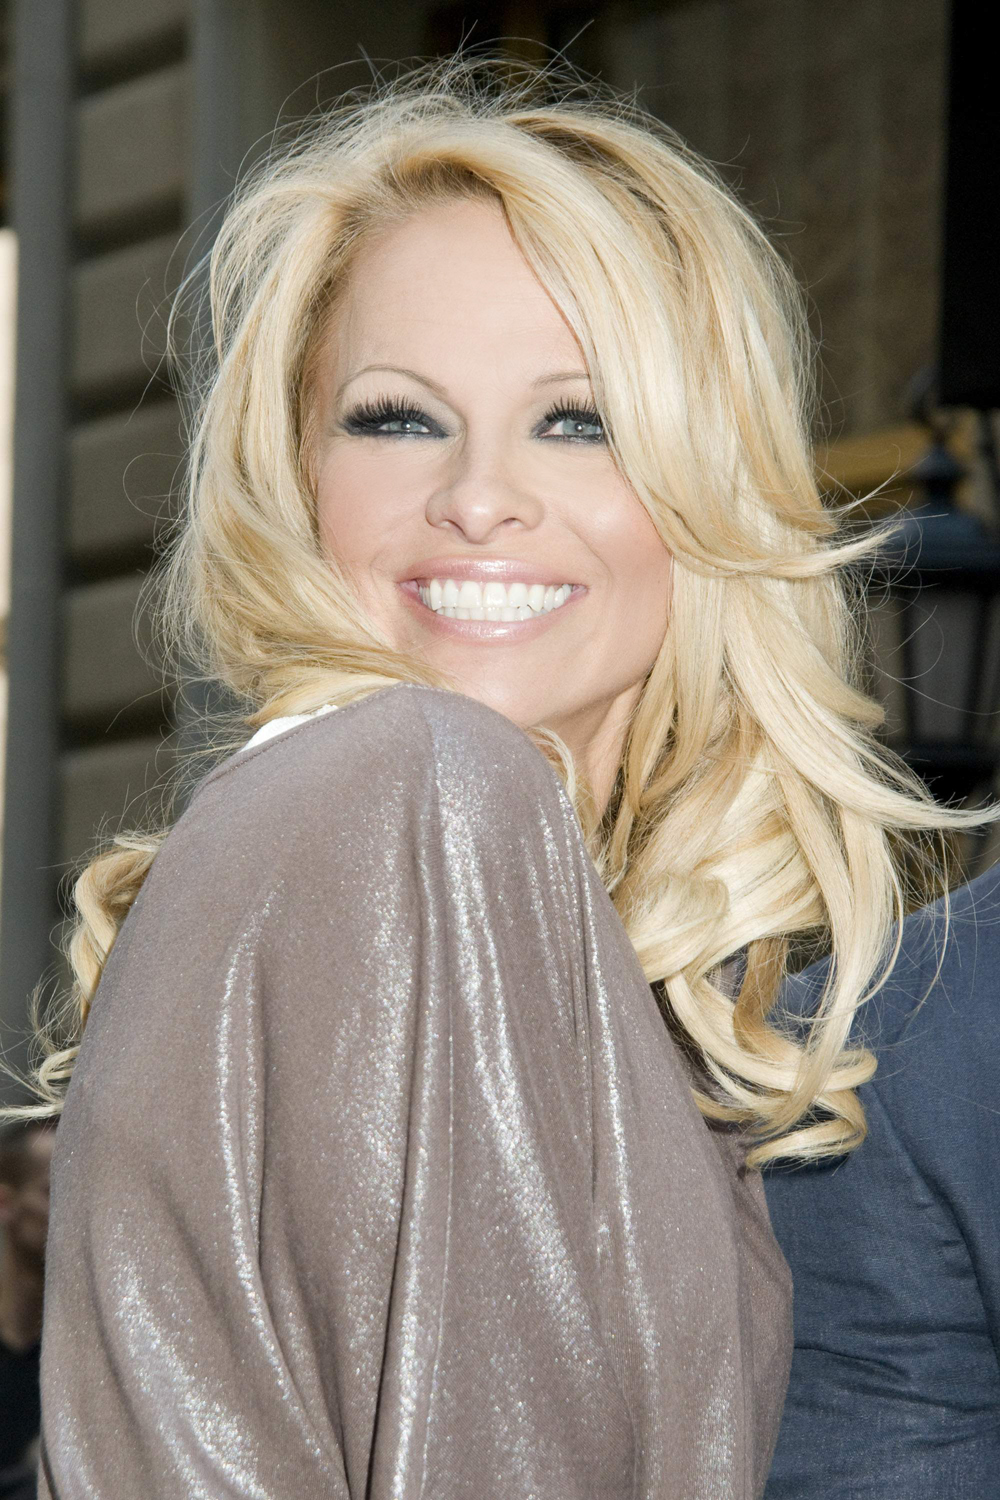 Indian Girl Beautiful Wallpaper Hollywood All Stars Pamela Anderson Pictures Profile And